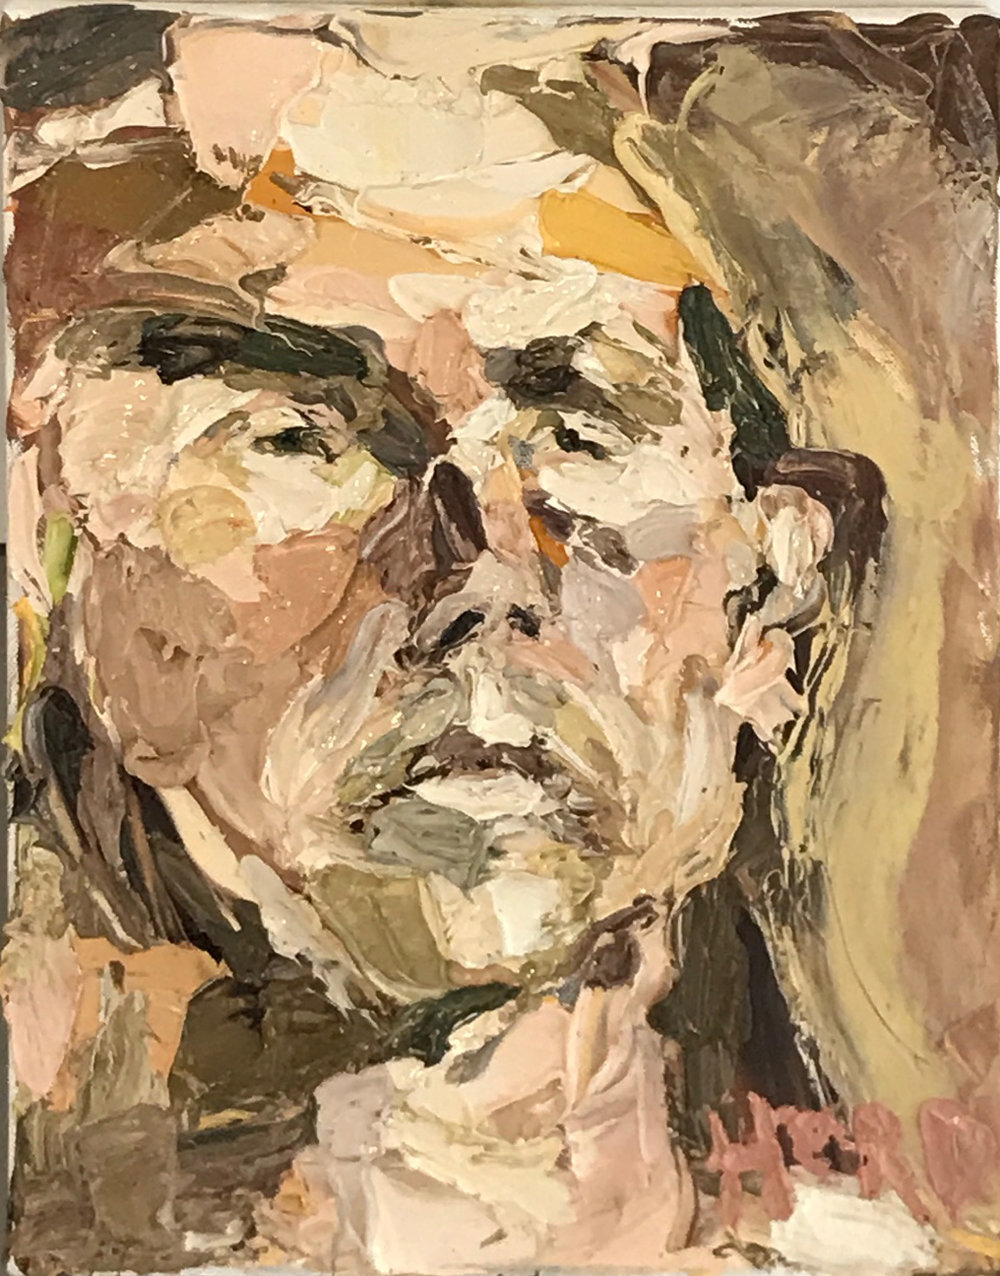 NIck Herd, Self Portrait II oil on canvas, 30 x 40 cm, available